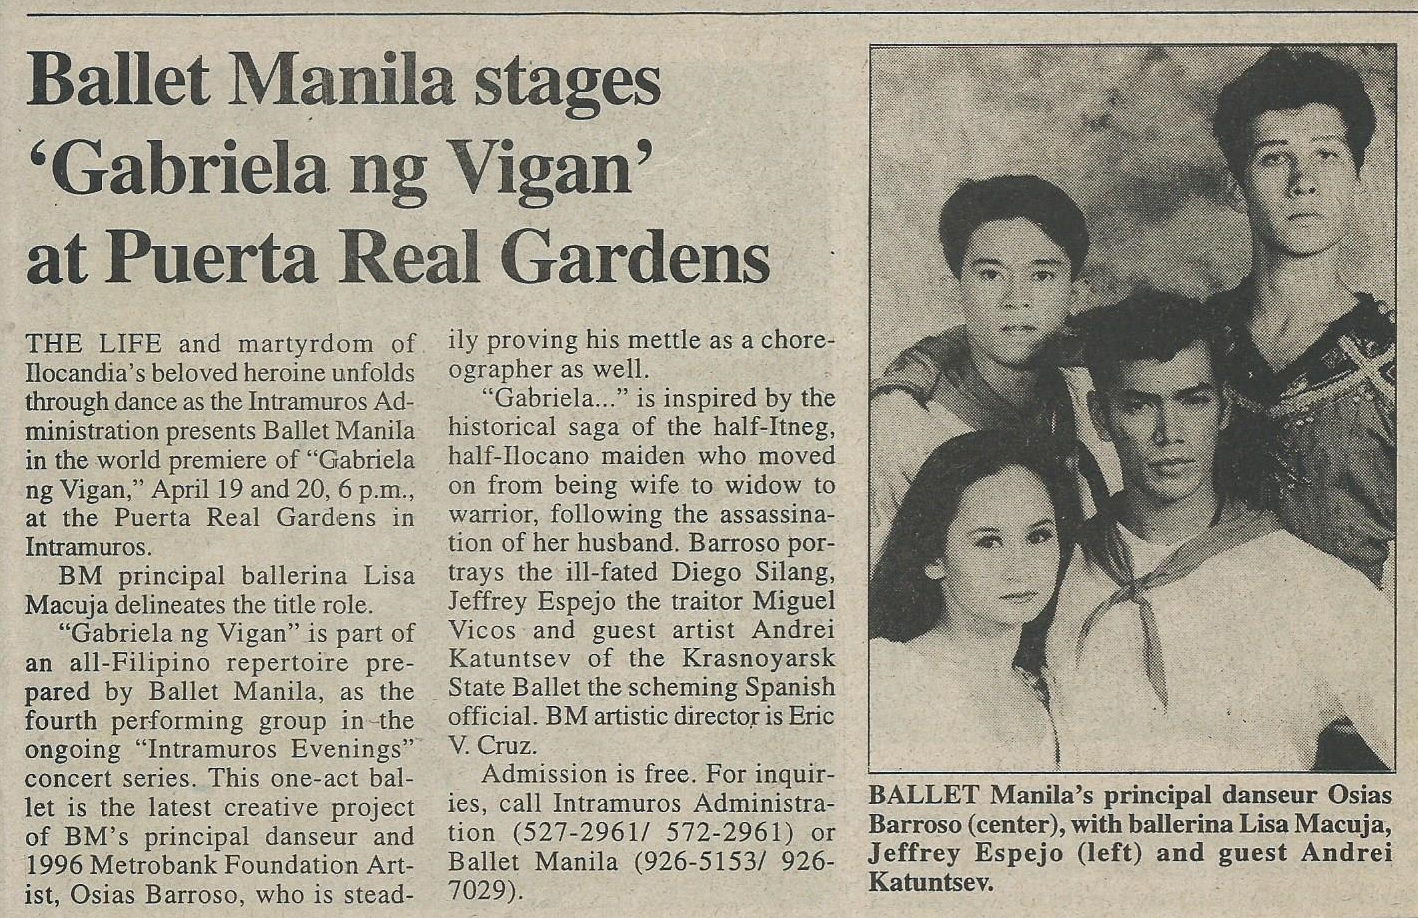 Clipping from  Philippine Daily Inquirer  announces the two nights of  Gabriela ng Vigan  at Puerta Real Gardens. From the Ballet Manila Archives collection